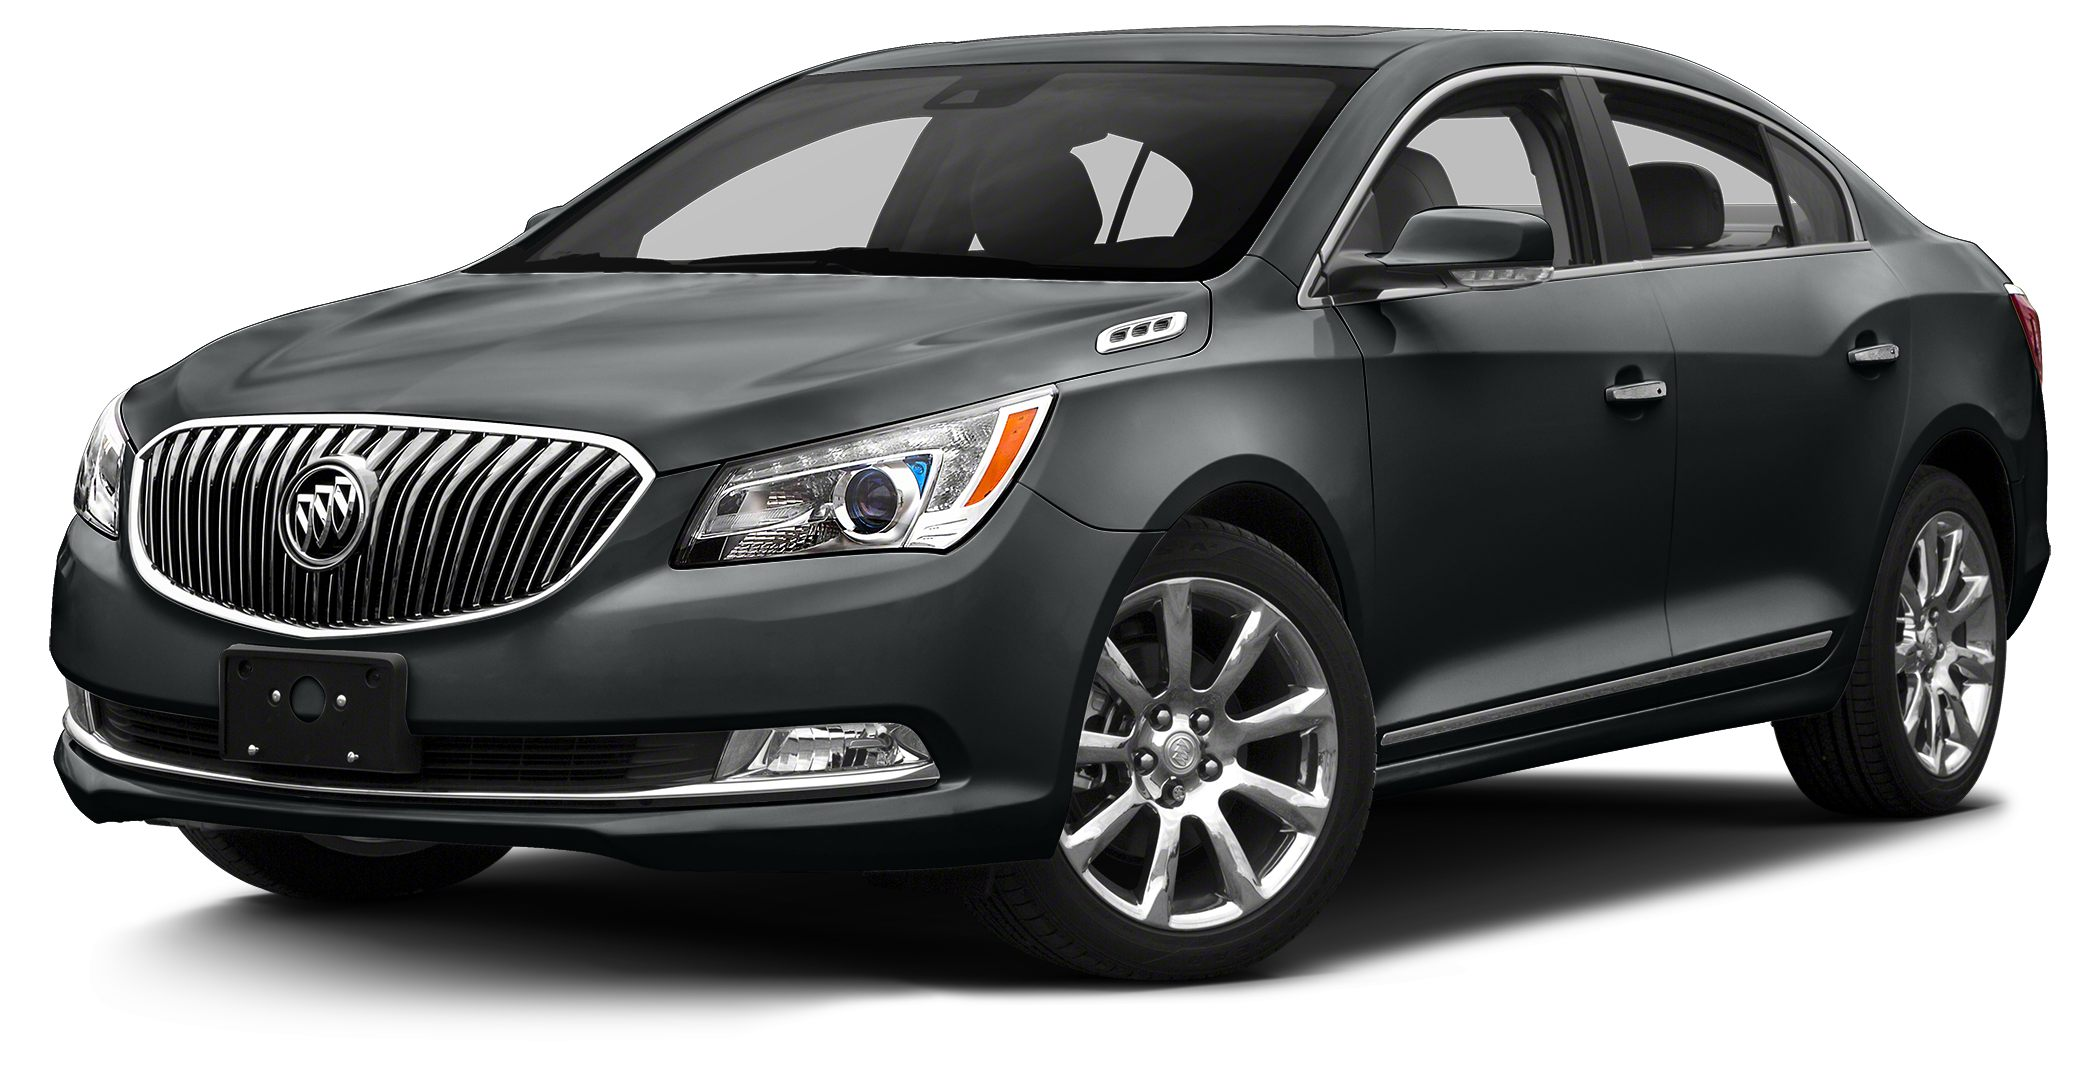 2015 Buick LaCrosse Premium II  2016 Buick LaCrosse Premium 2  Features include 8 Diagonal Co